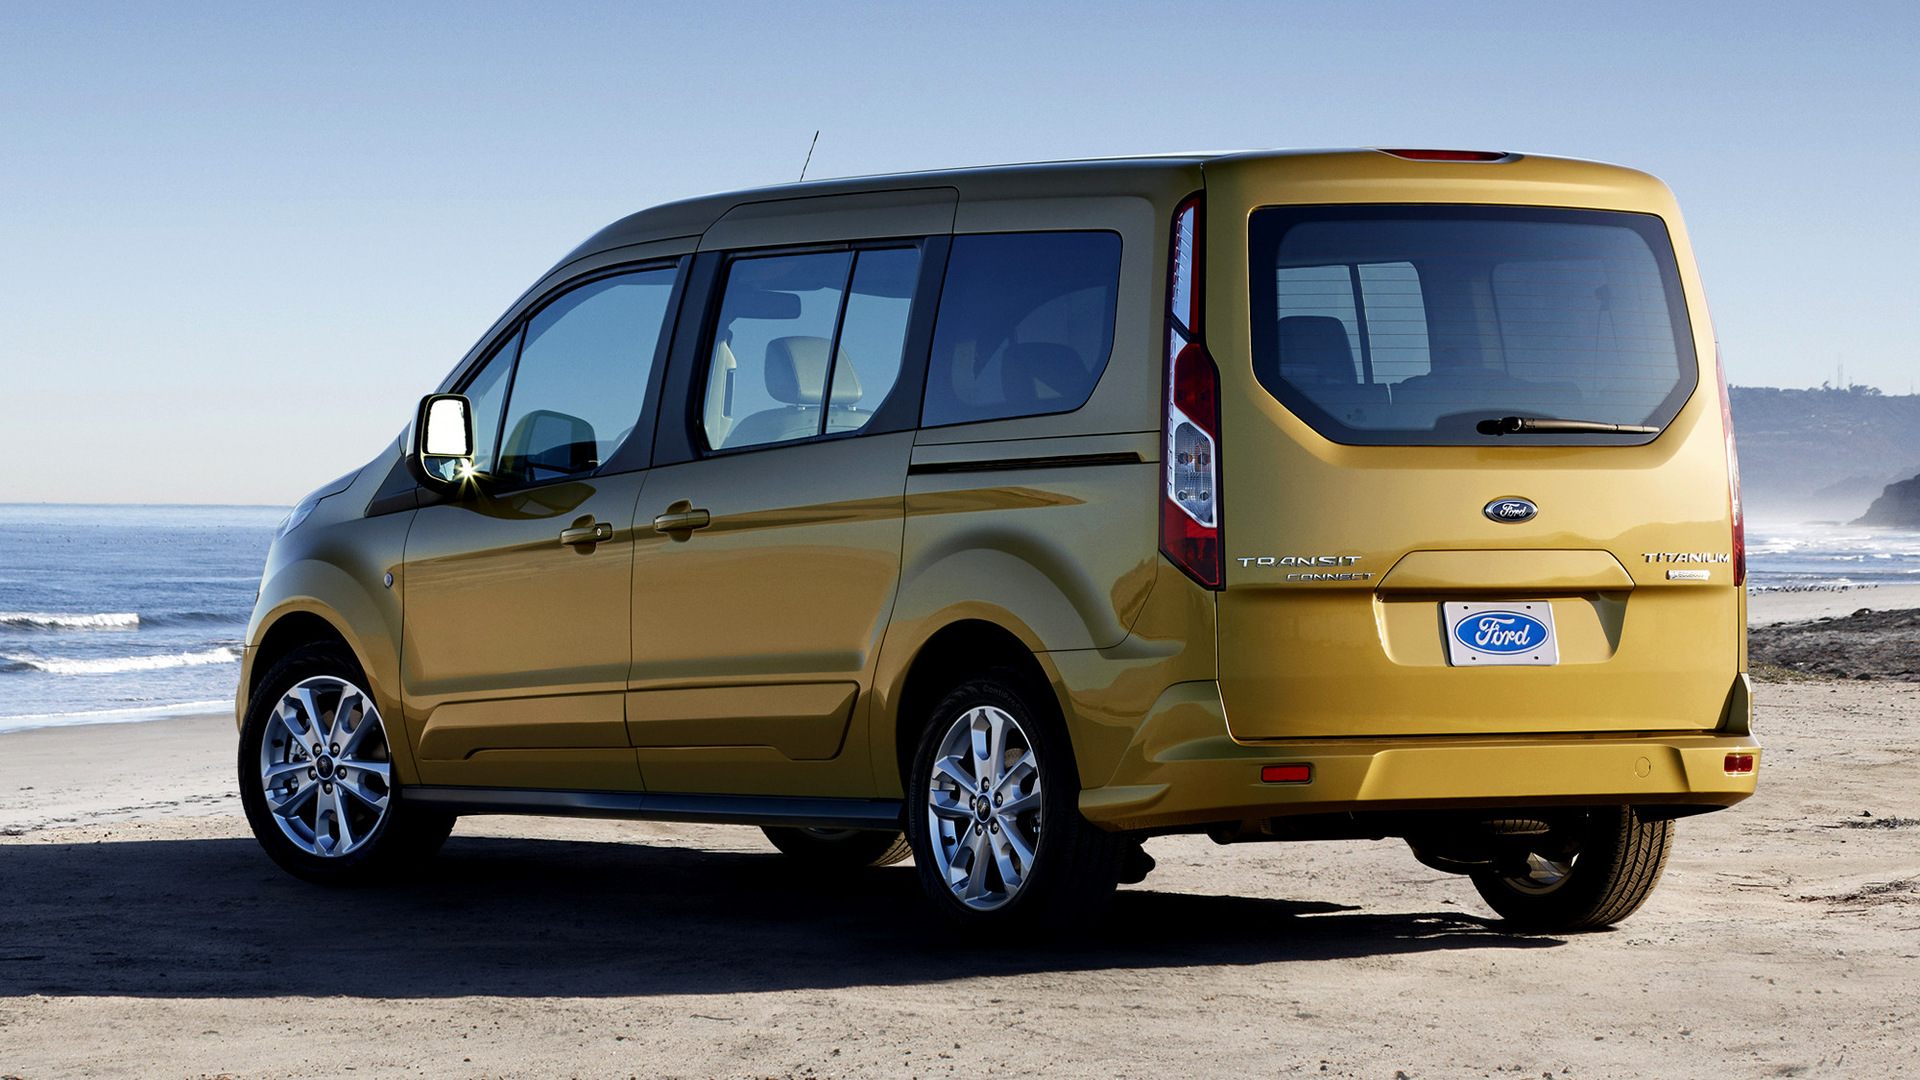 Ford Transit Wagon >> 2013 Ford Transit Connect Wagon LWB (US) - Wallpapers and ...